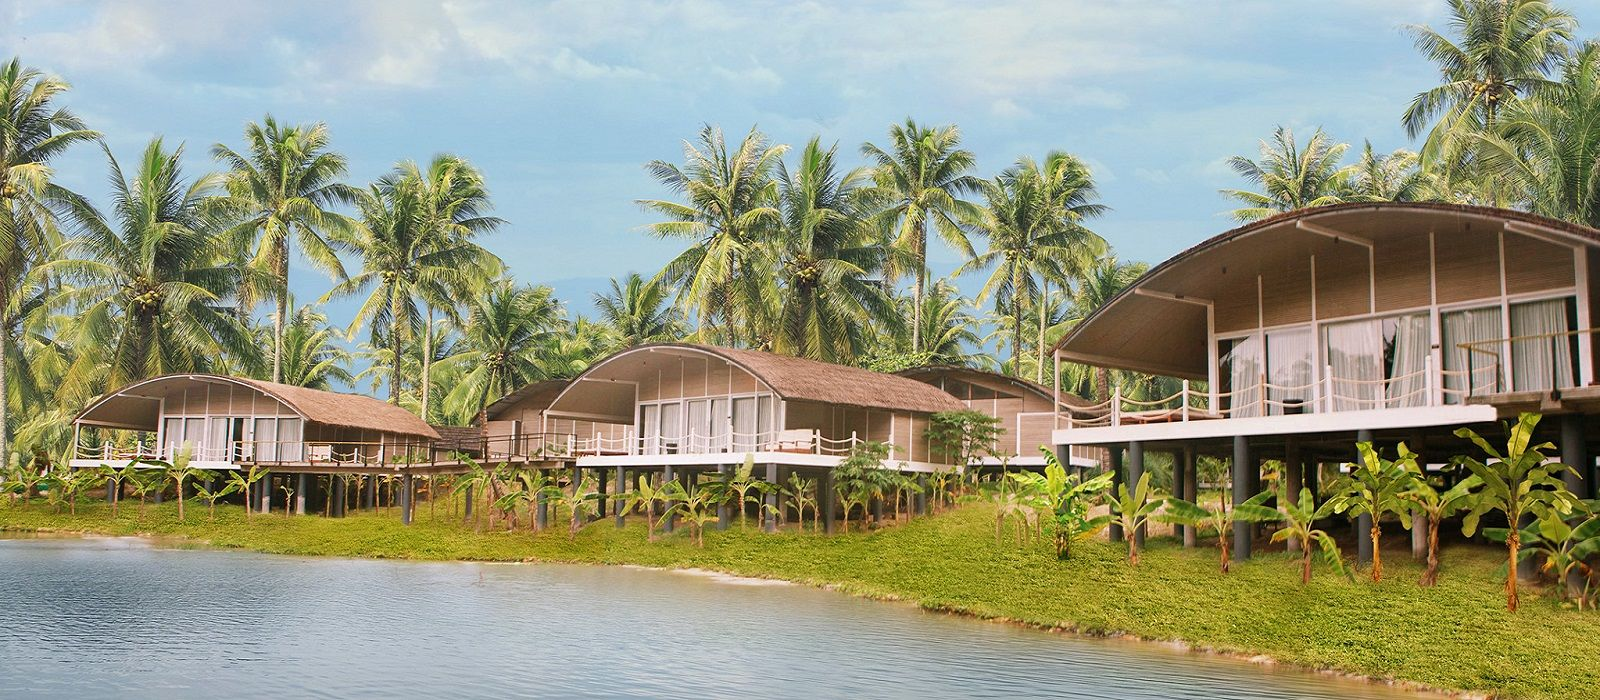 Hotel Taj Exotica Resort & Spa, Andamans Islands & Beaches